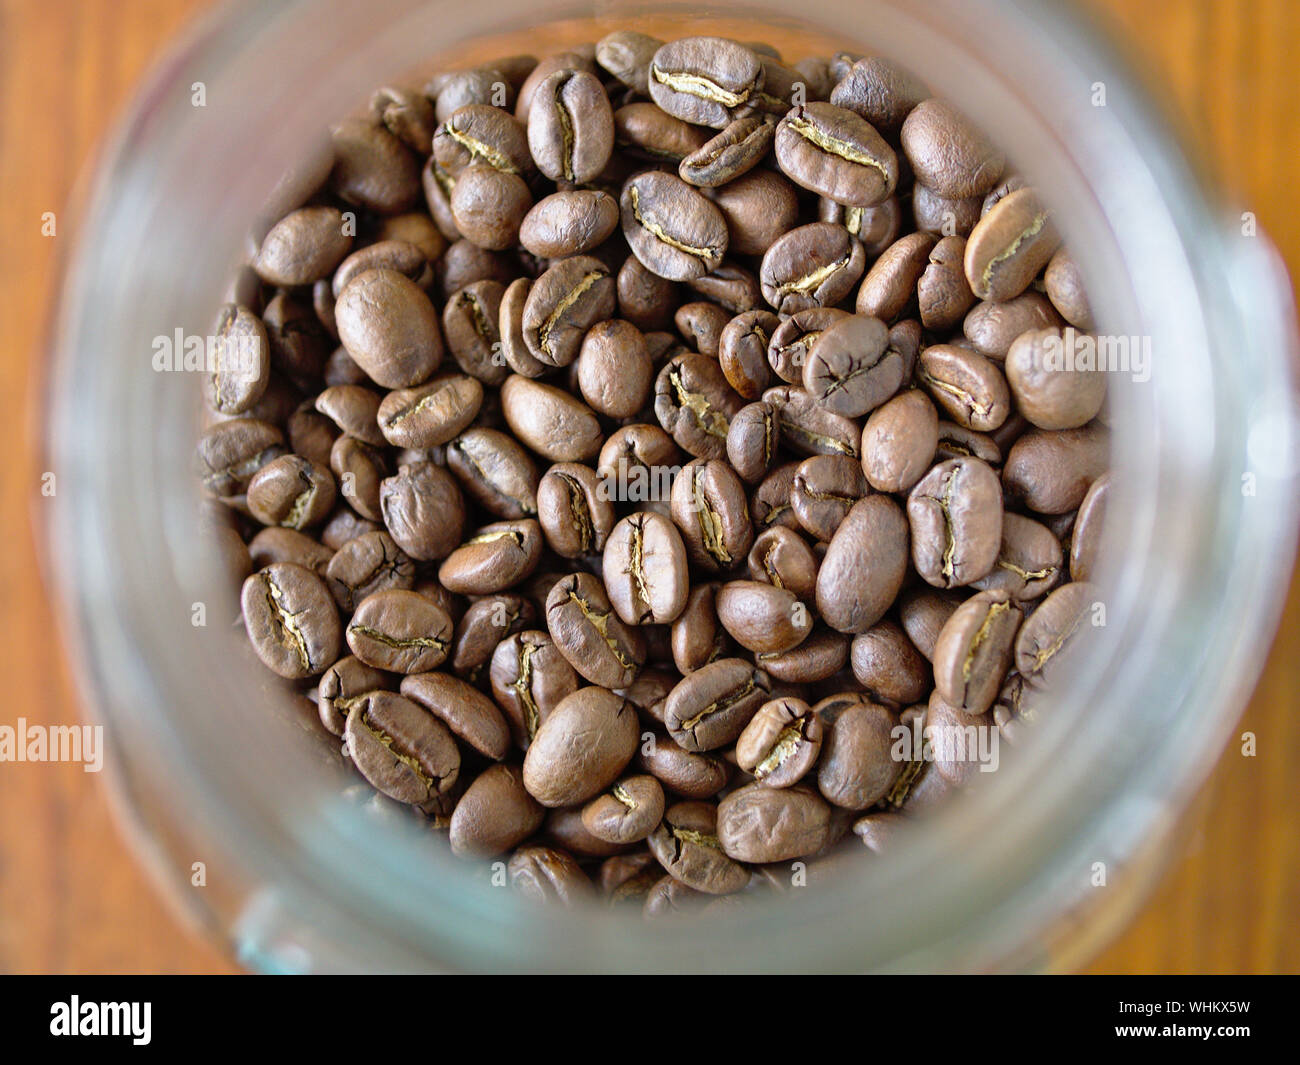 Roasted (medium) coffee beans in a glass jar. About to be scooped, ground & AeroPressed into a delicious cup of Americano type coffee. Stock Photo